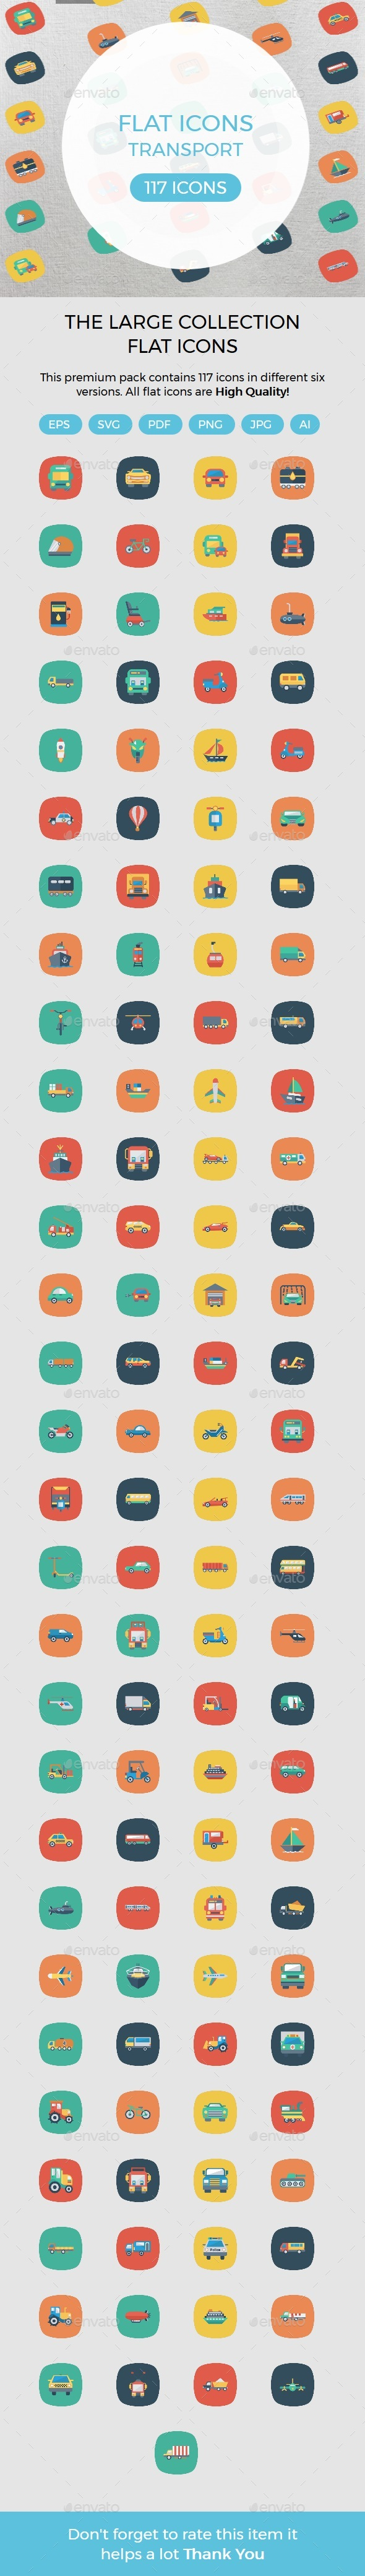 Transport Flat Square Rounded Icons - Icons